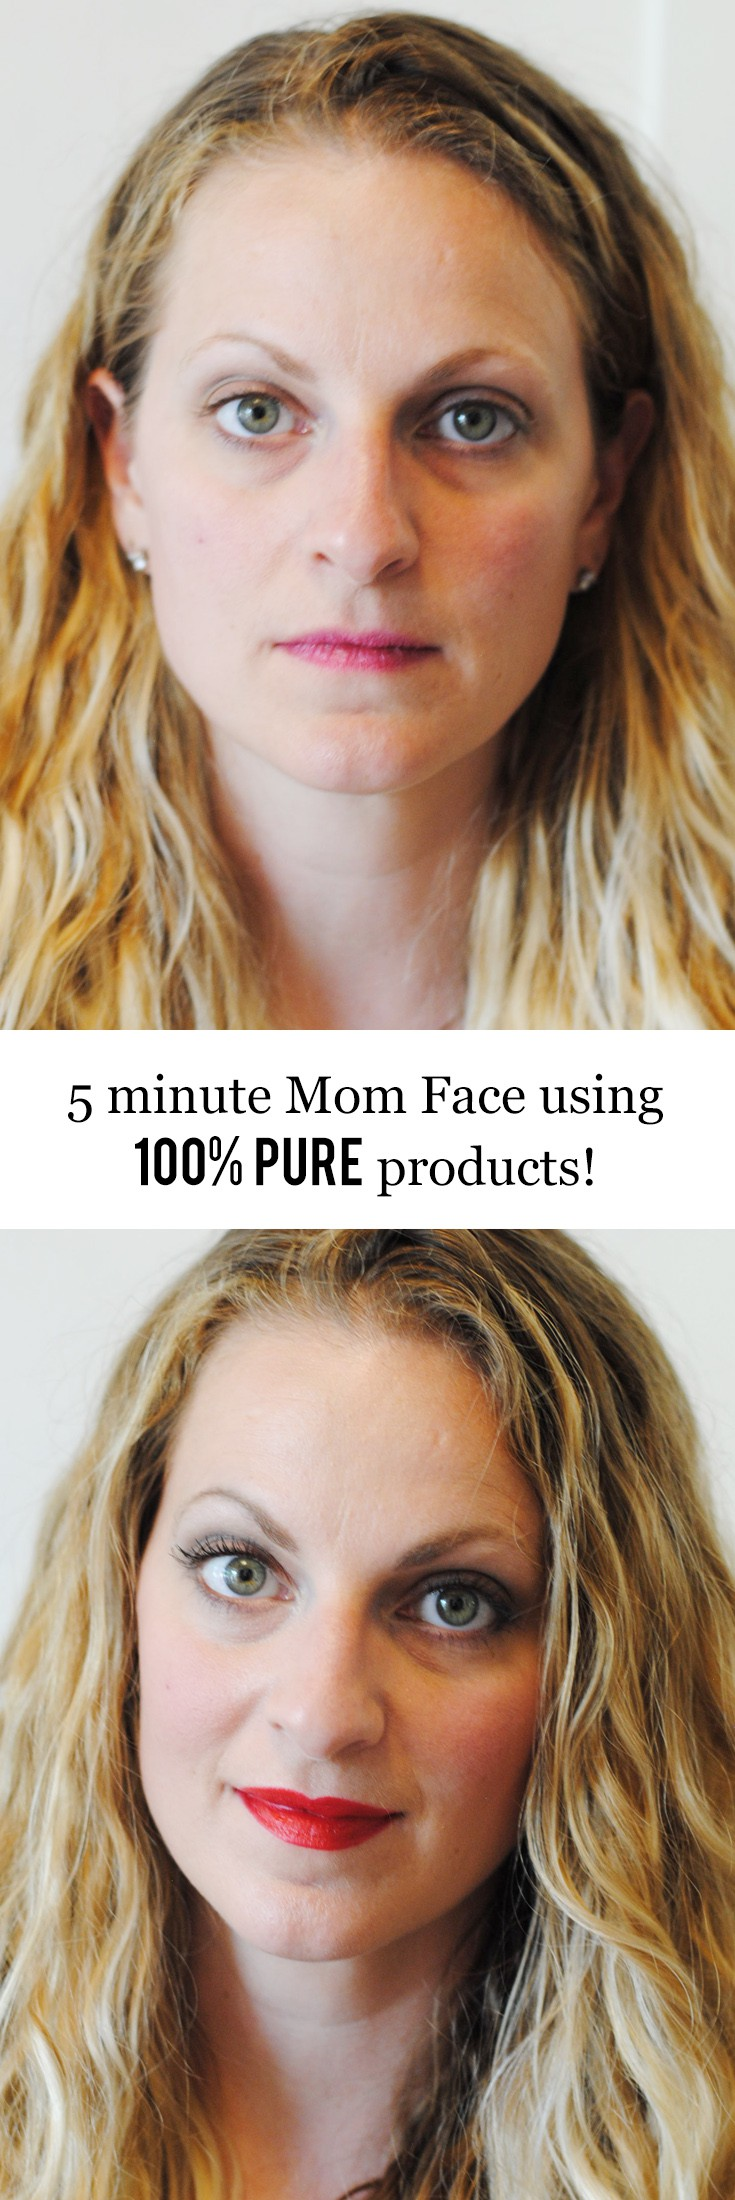 5 Minute Mom Face with 100% Pure